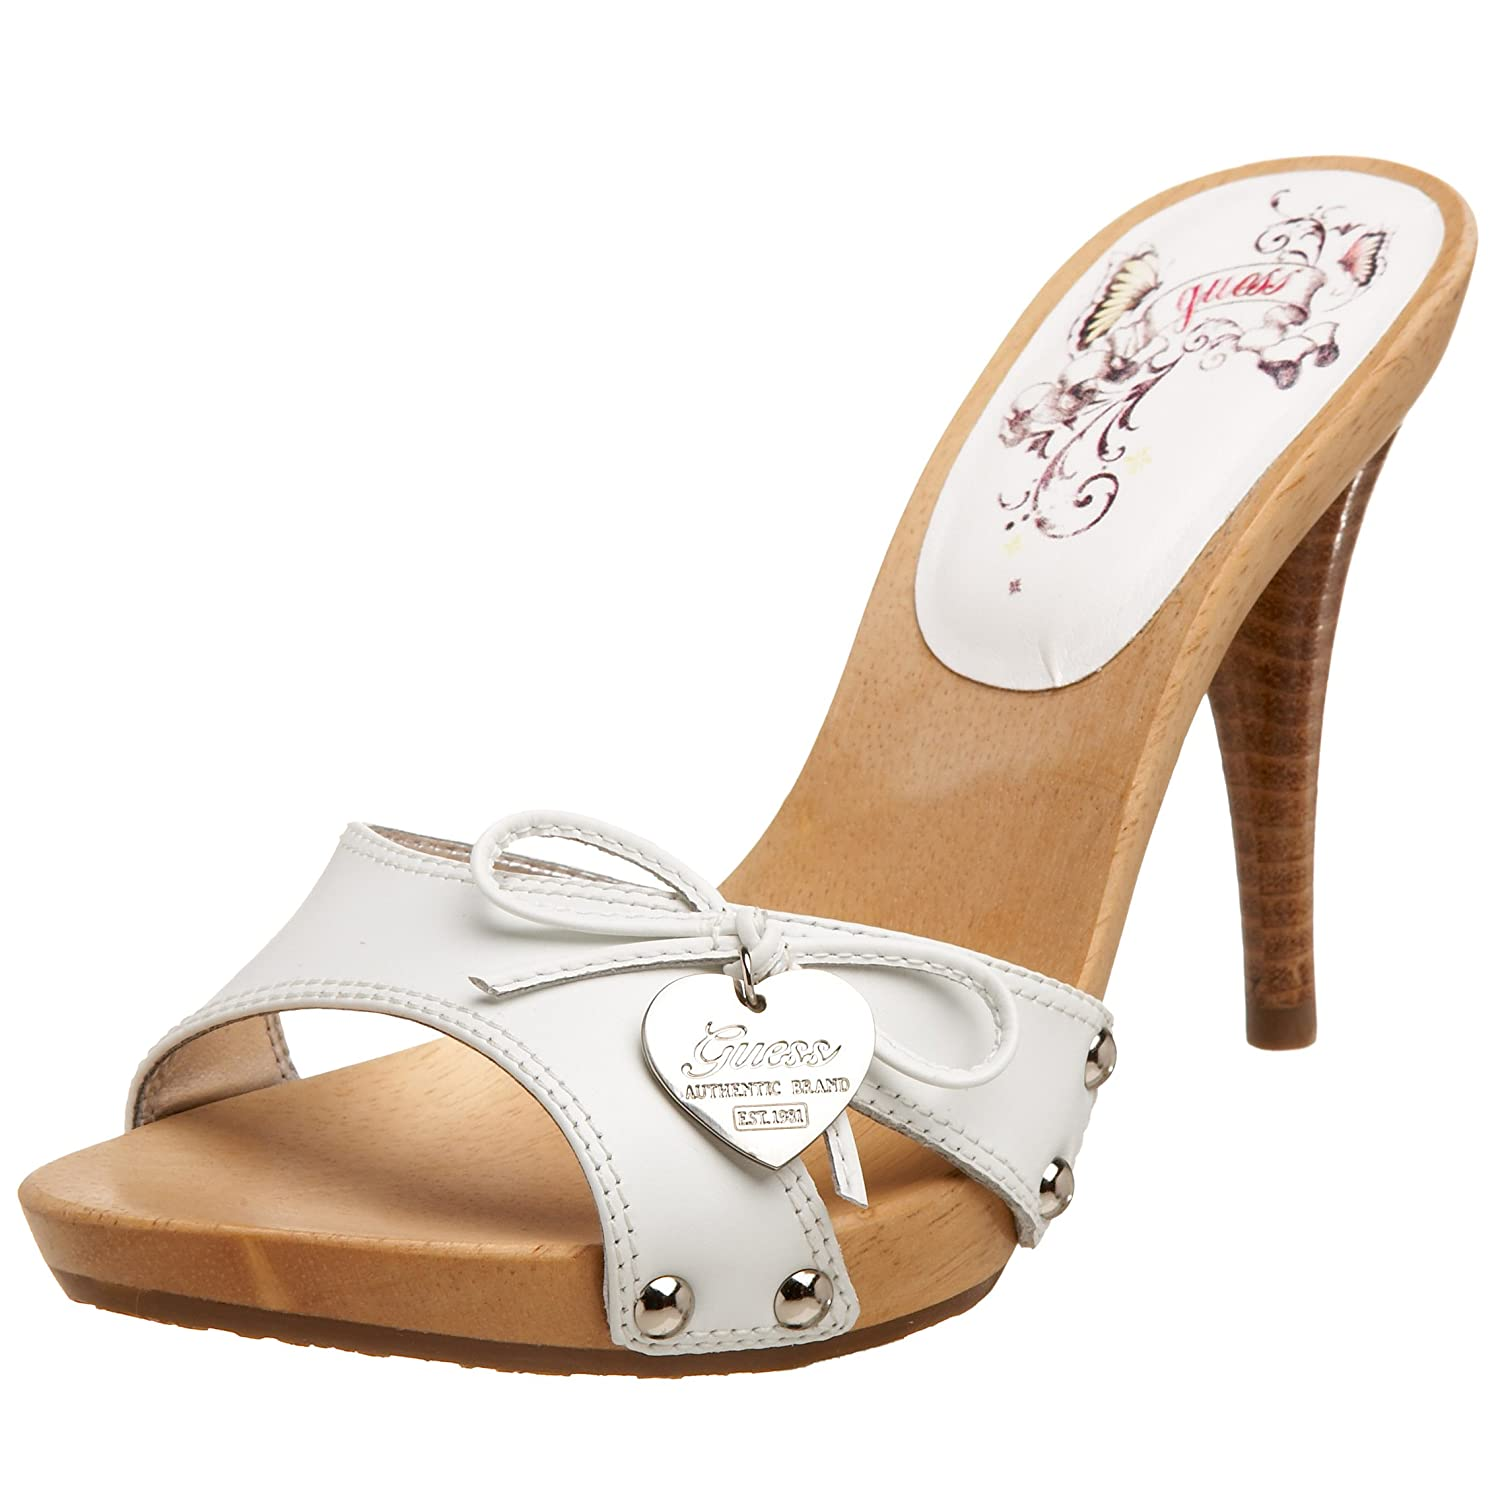 GUESS Women's Shower3 Once Band Wooden Sandal from endless.com